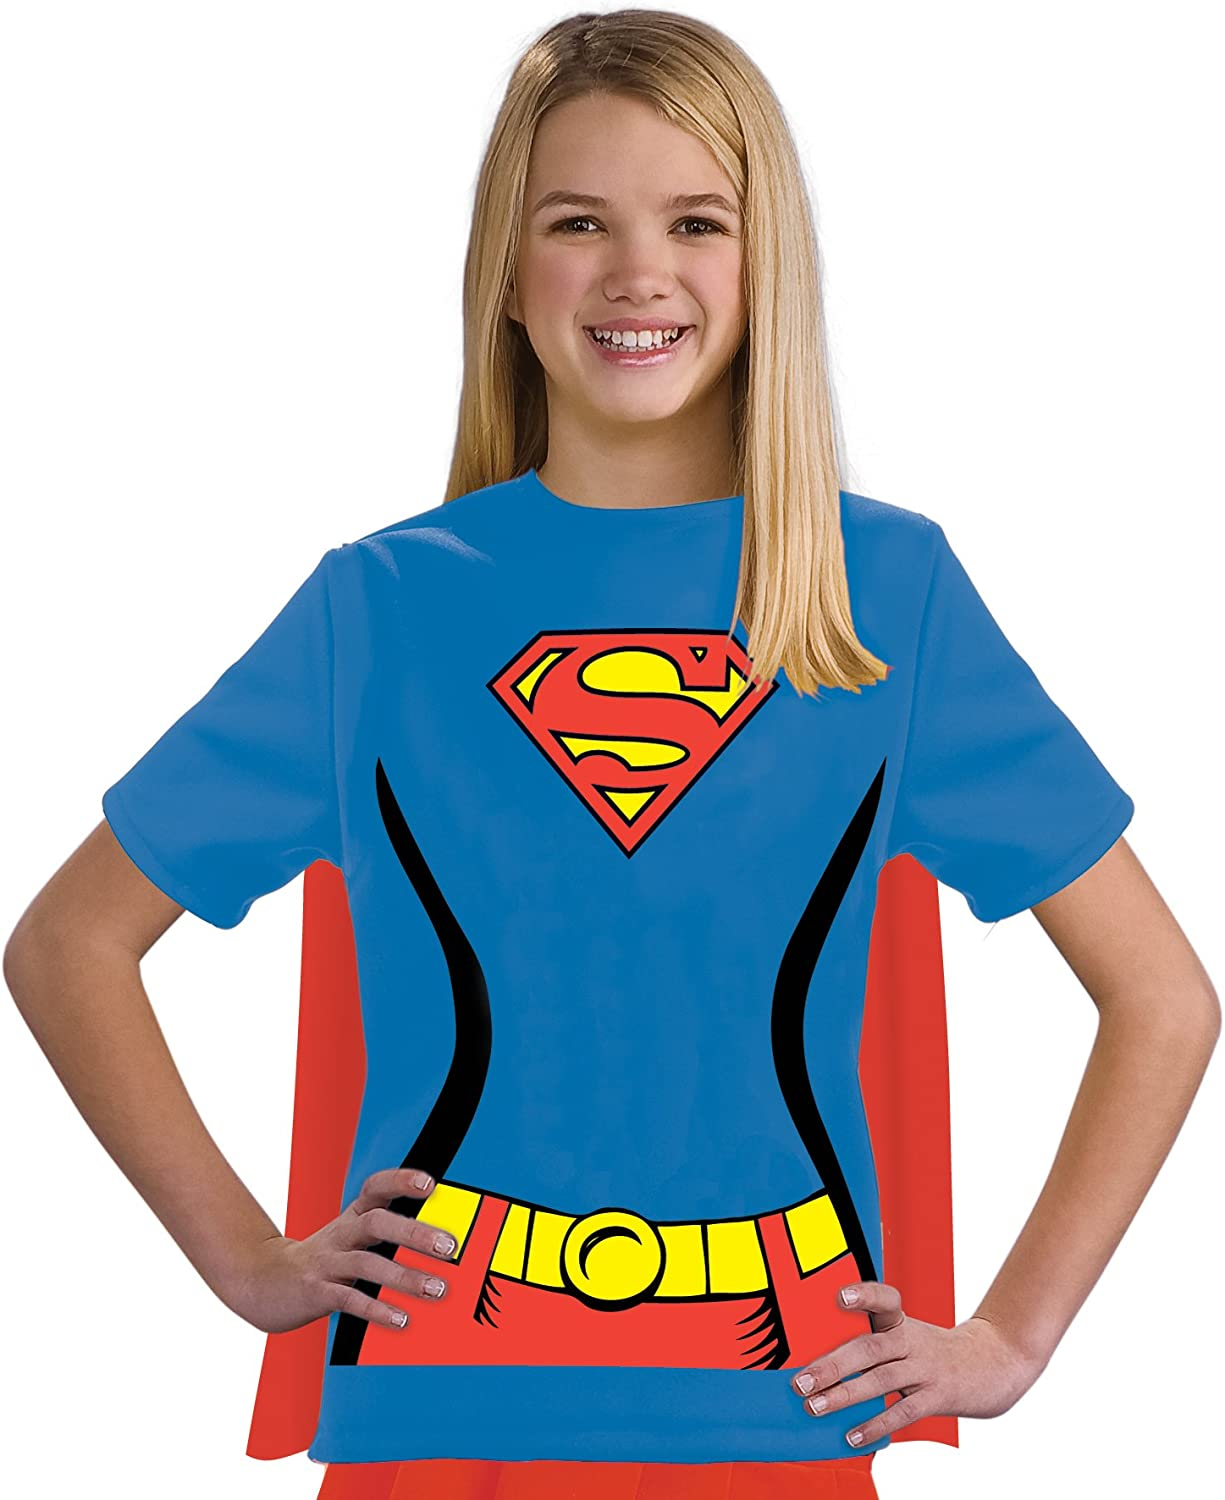 Kit disfraz de Supergirl DC Comics para niña: Amazon.es: Ropa y ...